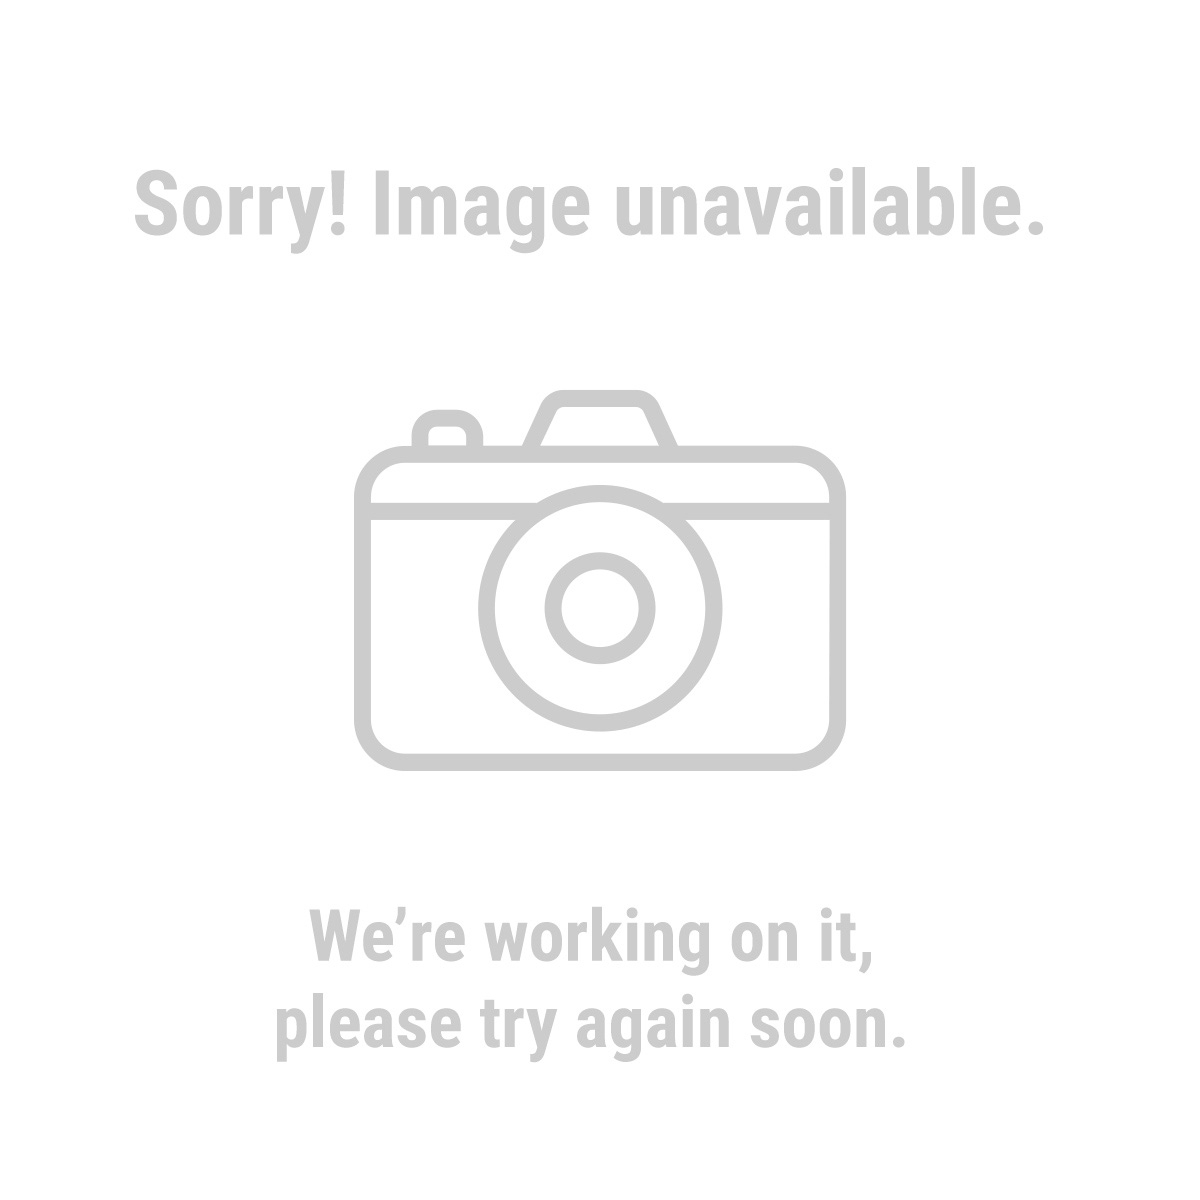 flying toy helicopters with Pdf Diy Balsa Wood Airplane Download Bar Stool Diy Plan on Ch 53e Super Stallion Helicopters additionally ing Drone Invasion Will Play also Pdf Diy Balsa Wood Airplane Download Bar Stool Diy Plan additionally Gas Rc Helicopters likewise Flying Ball Helicopter reviews.